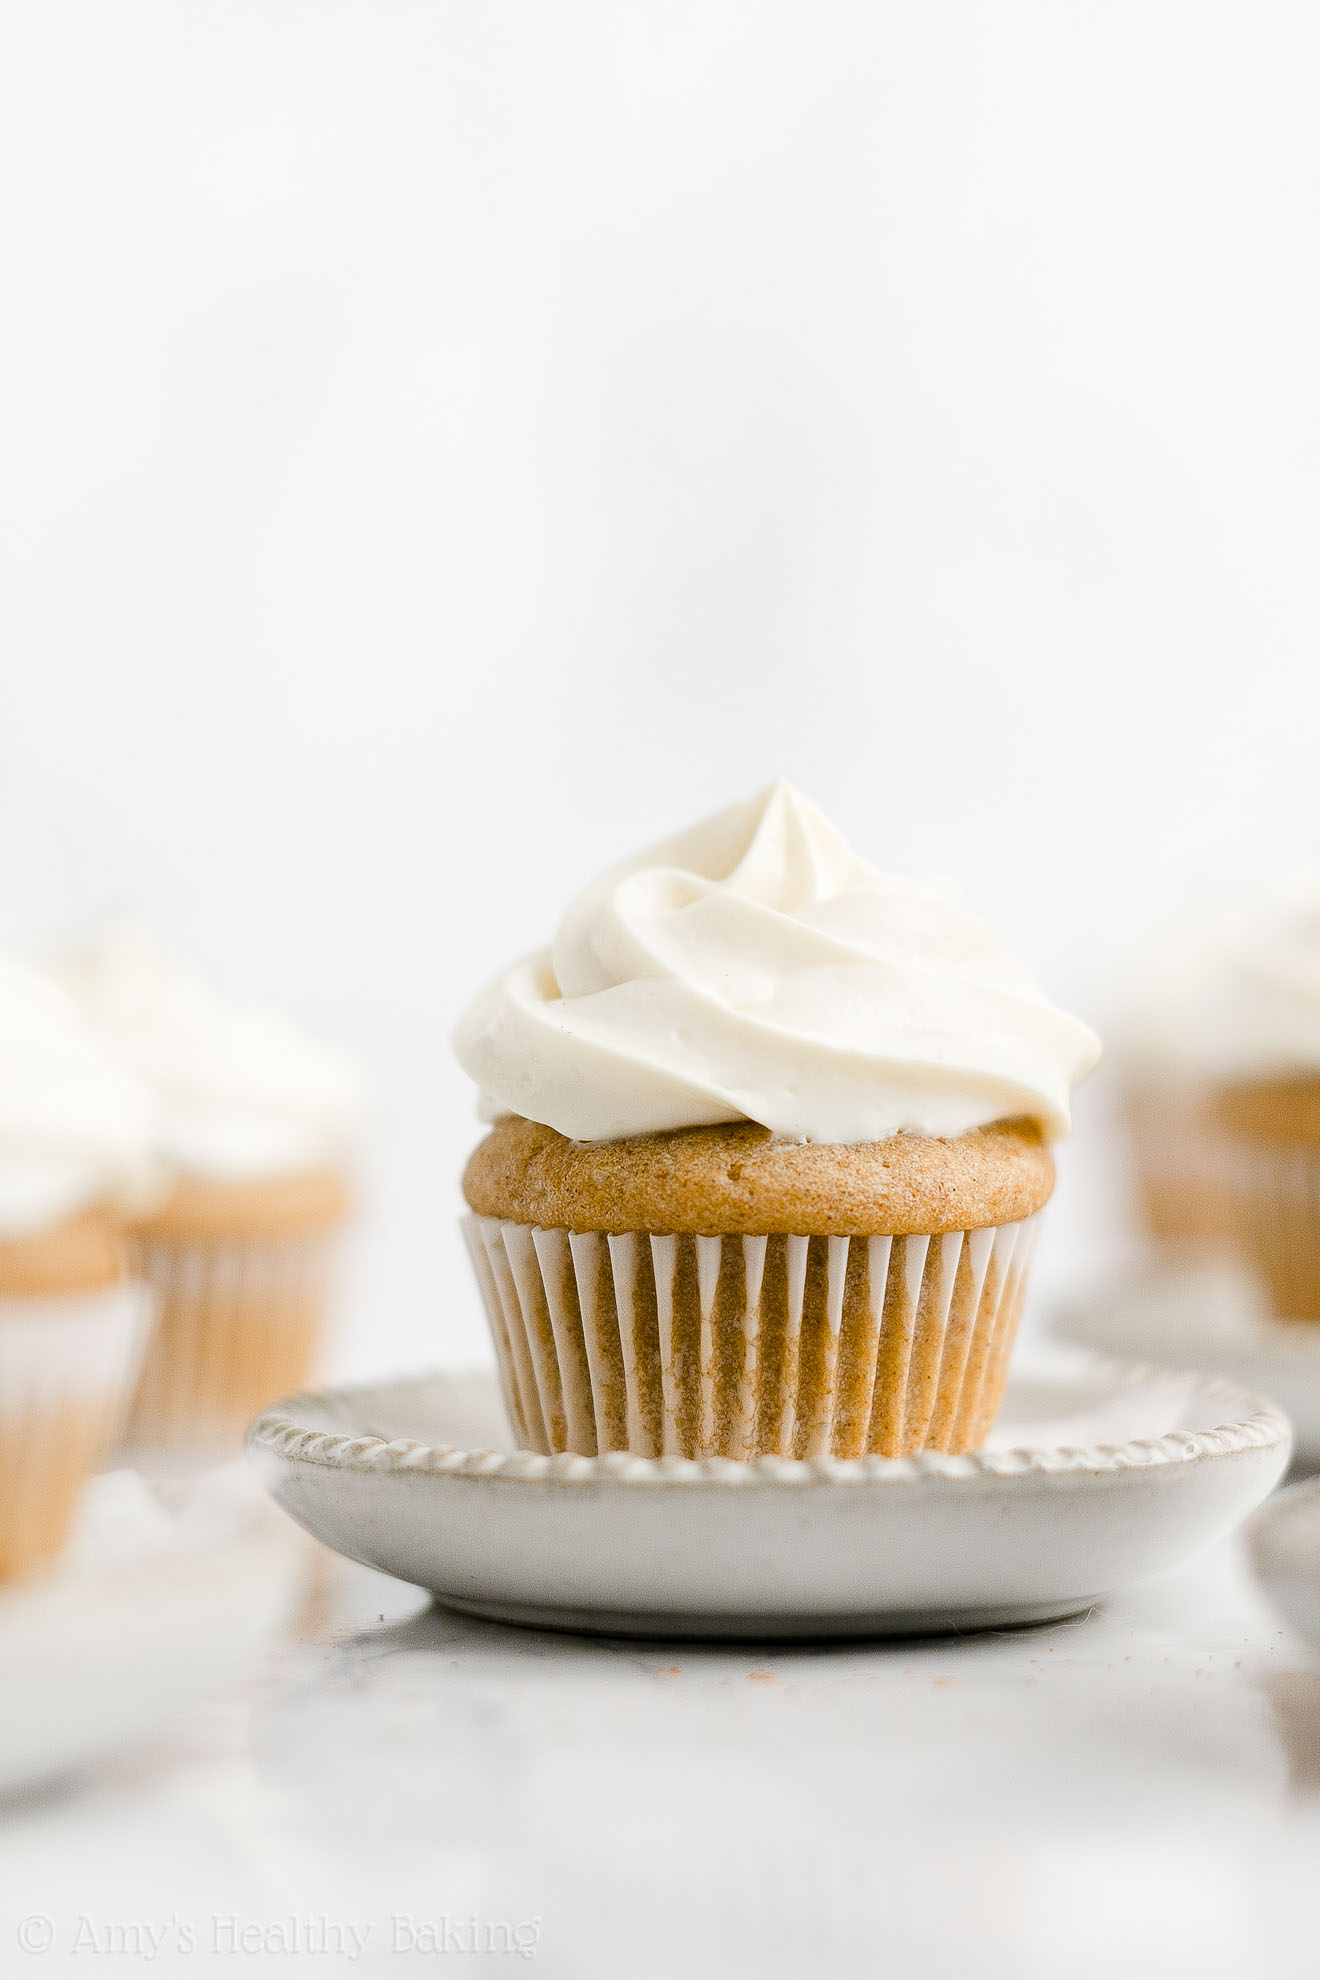 Healthy Low Calorie Sugar Free Whole Wheat Mini Snickerdoodle Cupcakes